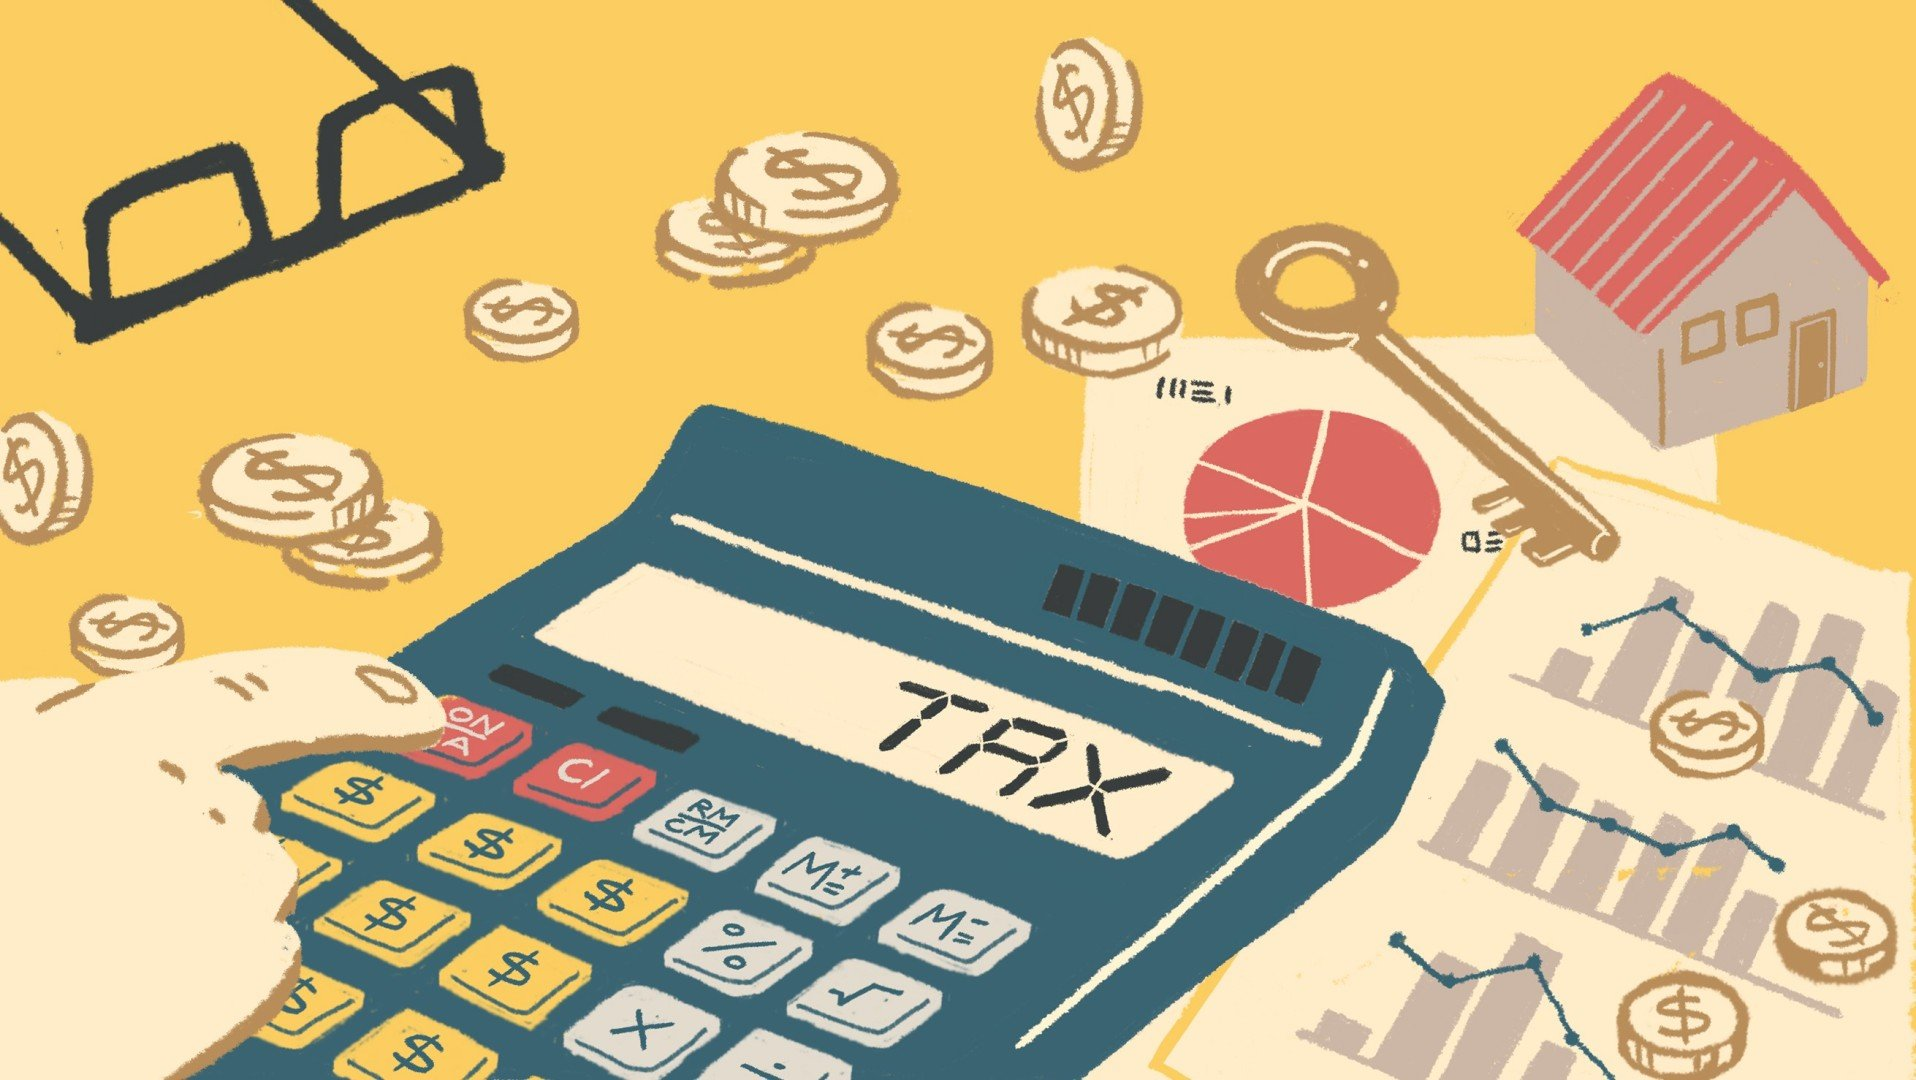 Hong Kong's tax system explained: why levies are so low, how